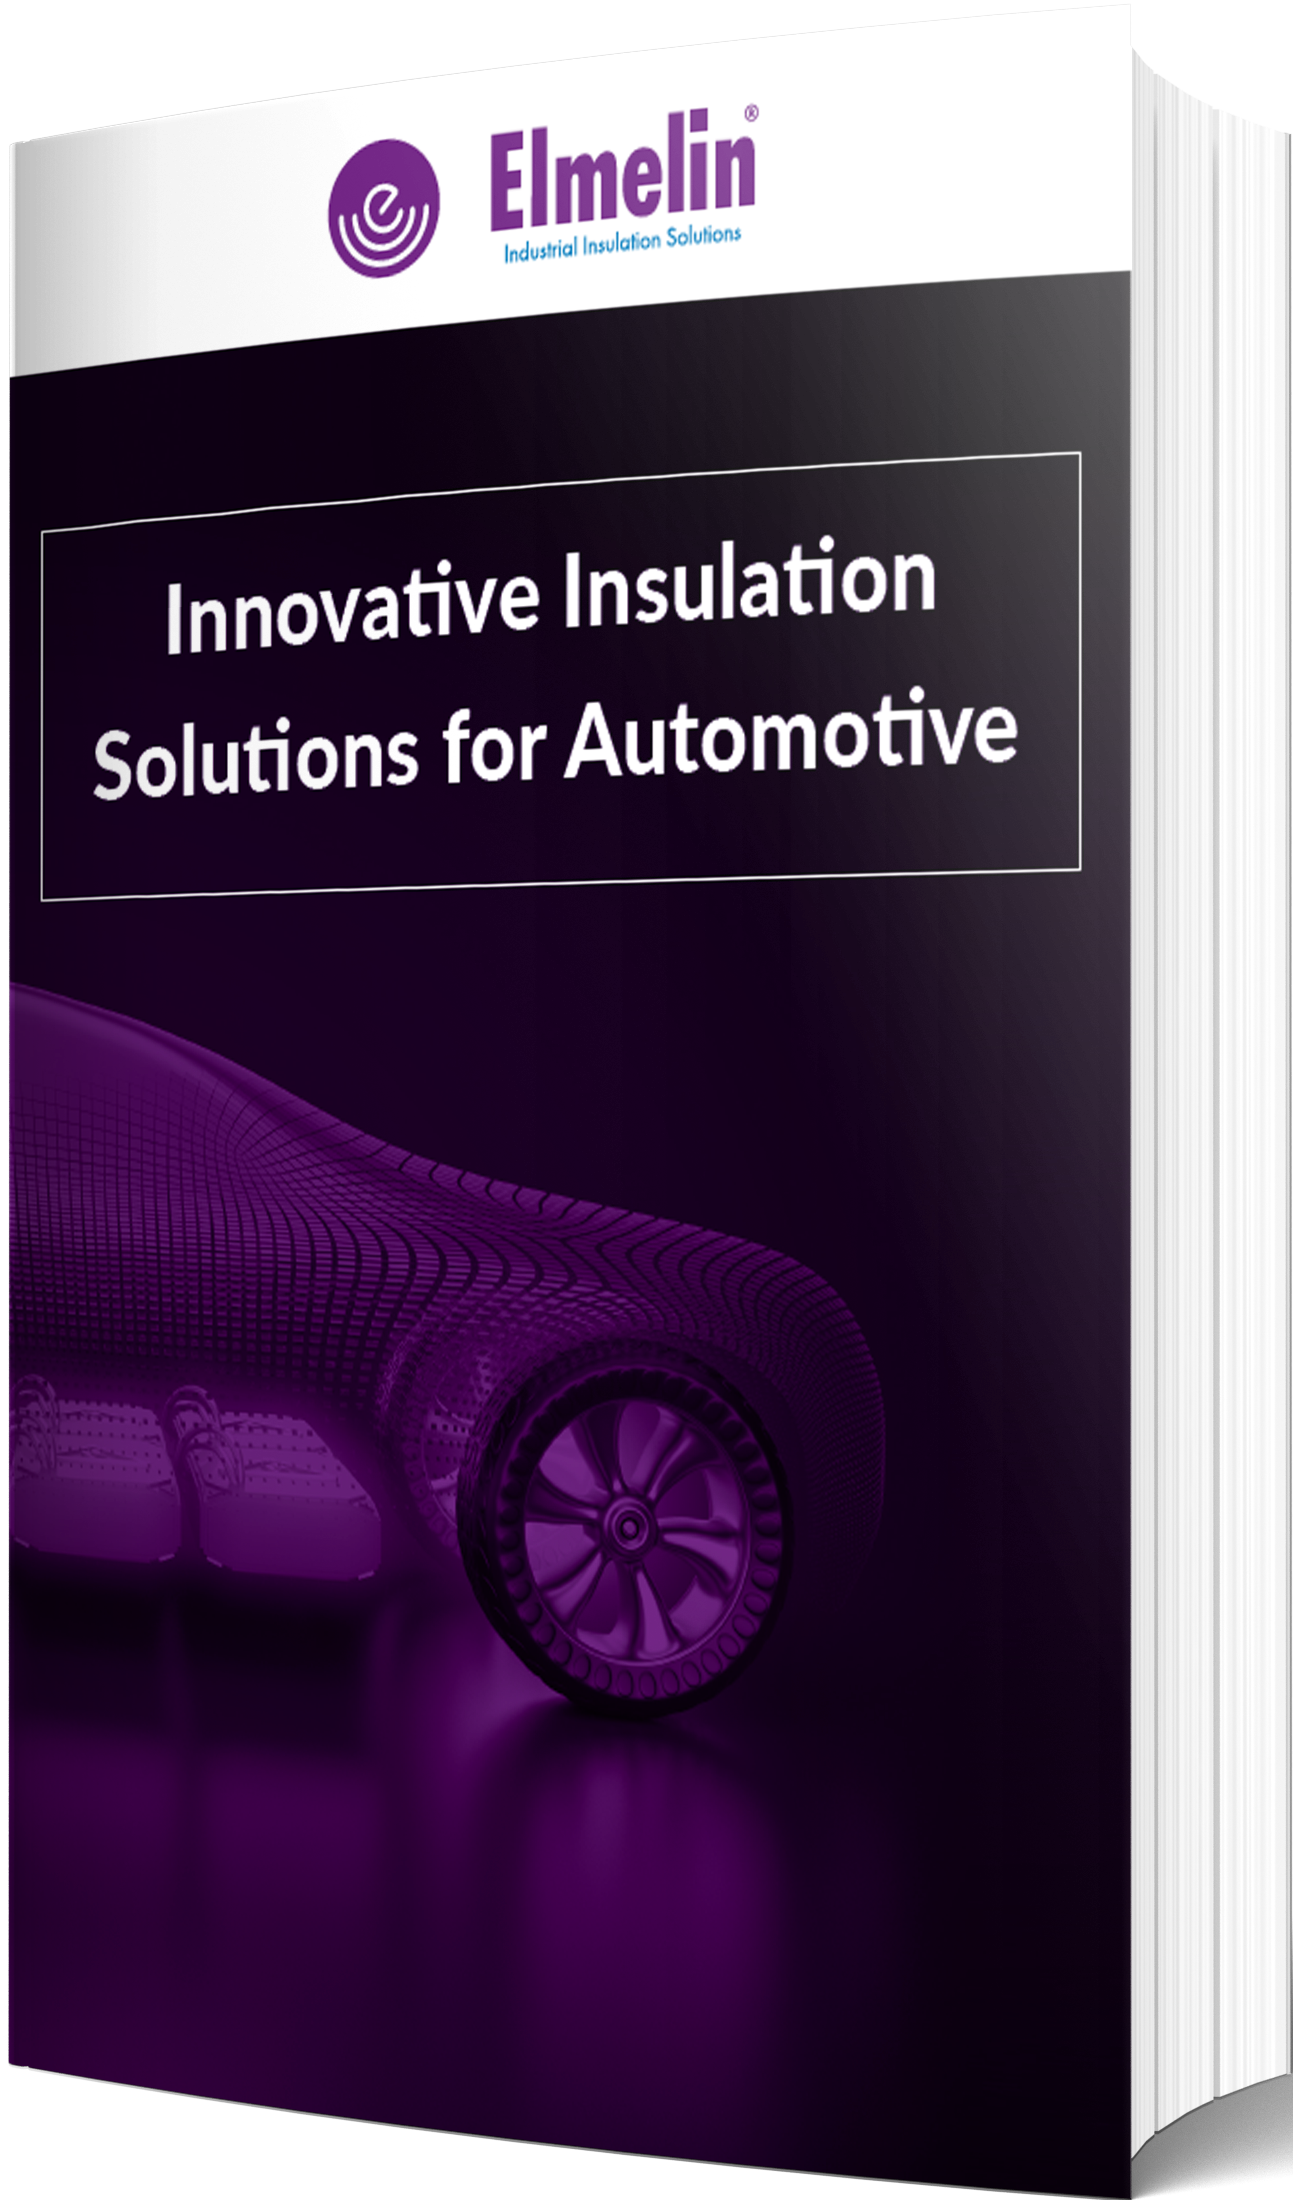 Elmelin Solutions for Automotive